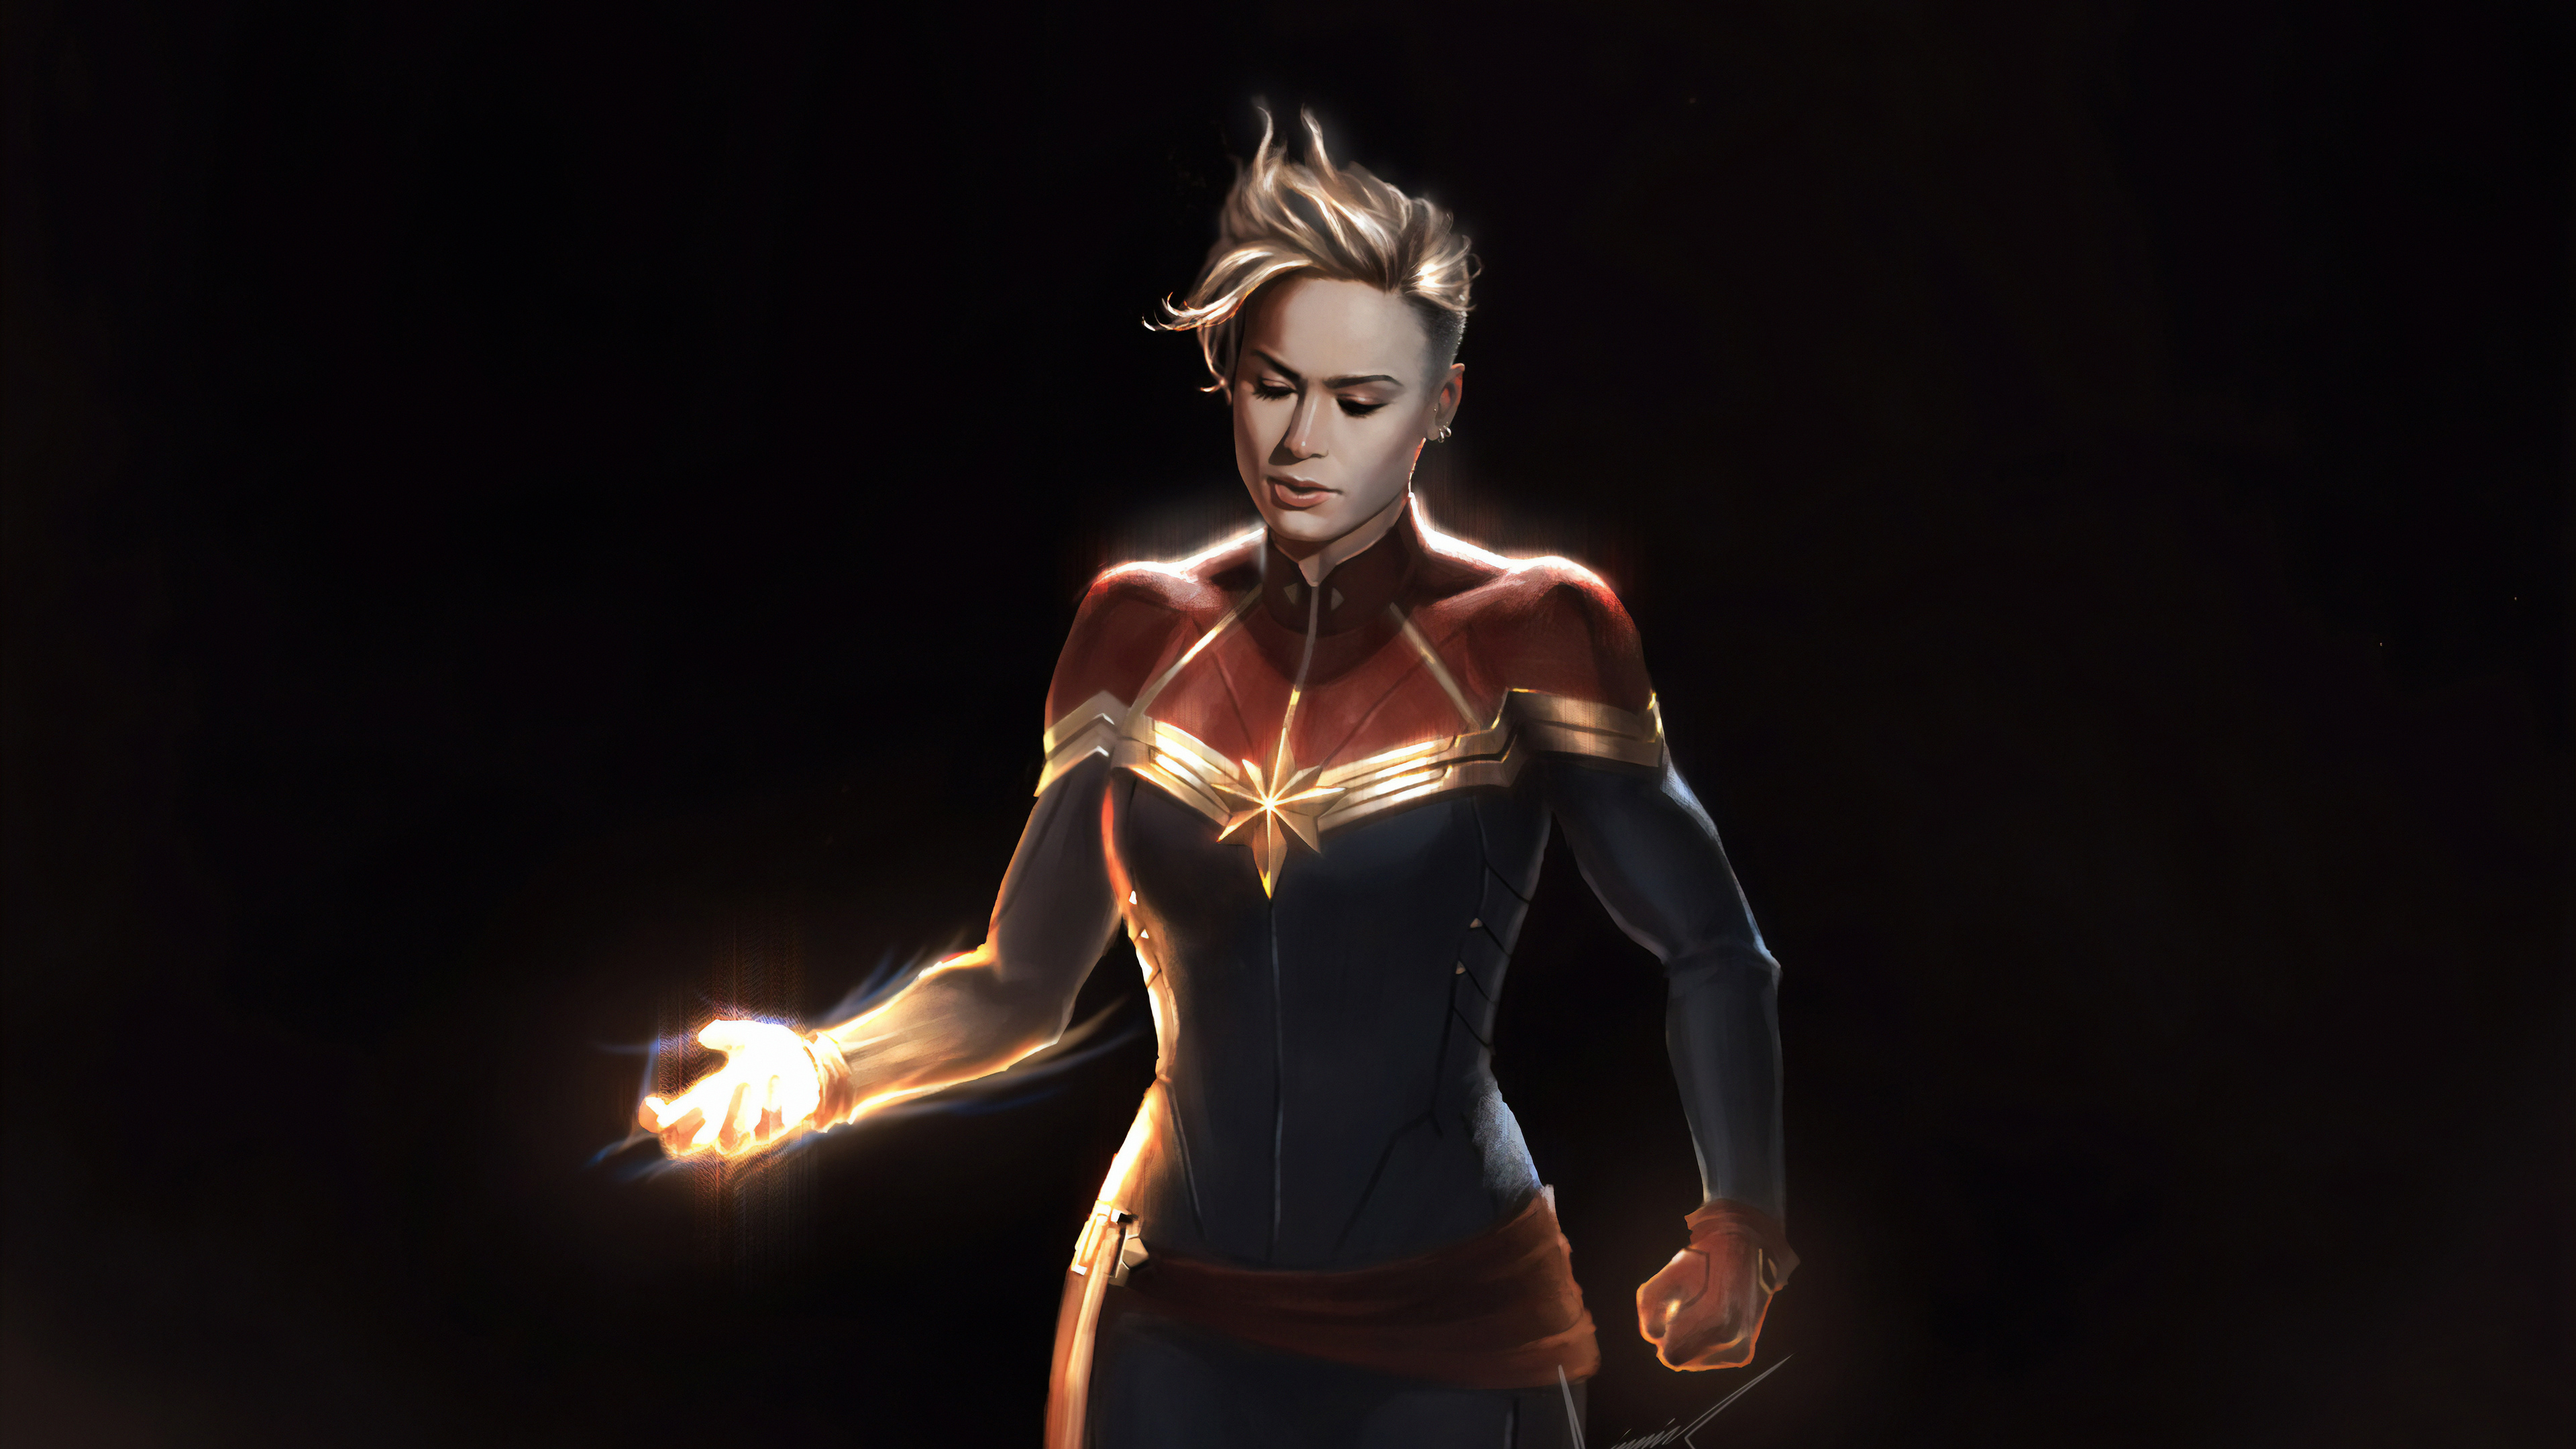 captain marvel sketch art 1570394463 - Captain Marvel Sketch Art - superheroes wallpapers, hd-wallpapers, captain marvel wallpapers, artwork wallpapers, artstation wallpapers, art wallpapers, 4k-wallpapers